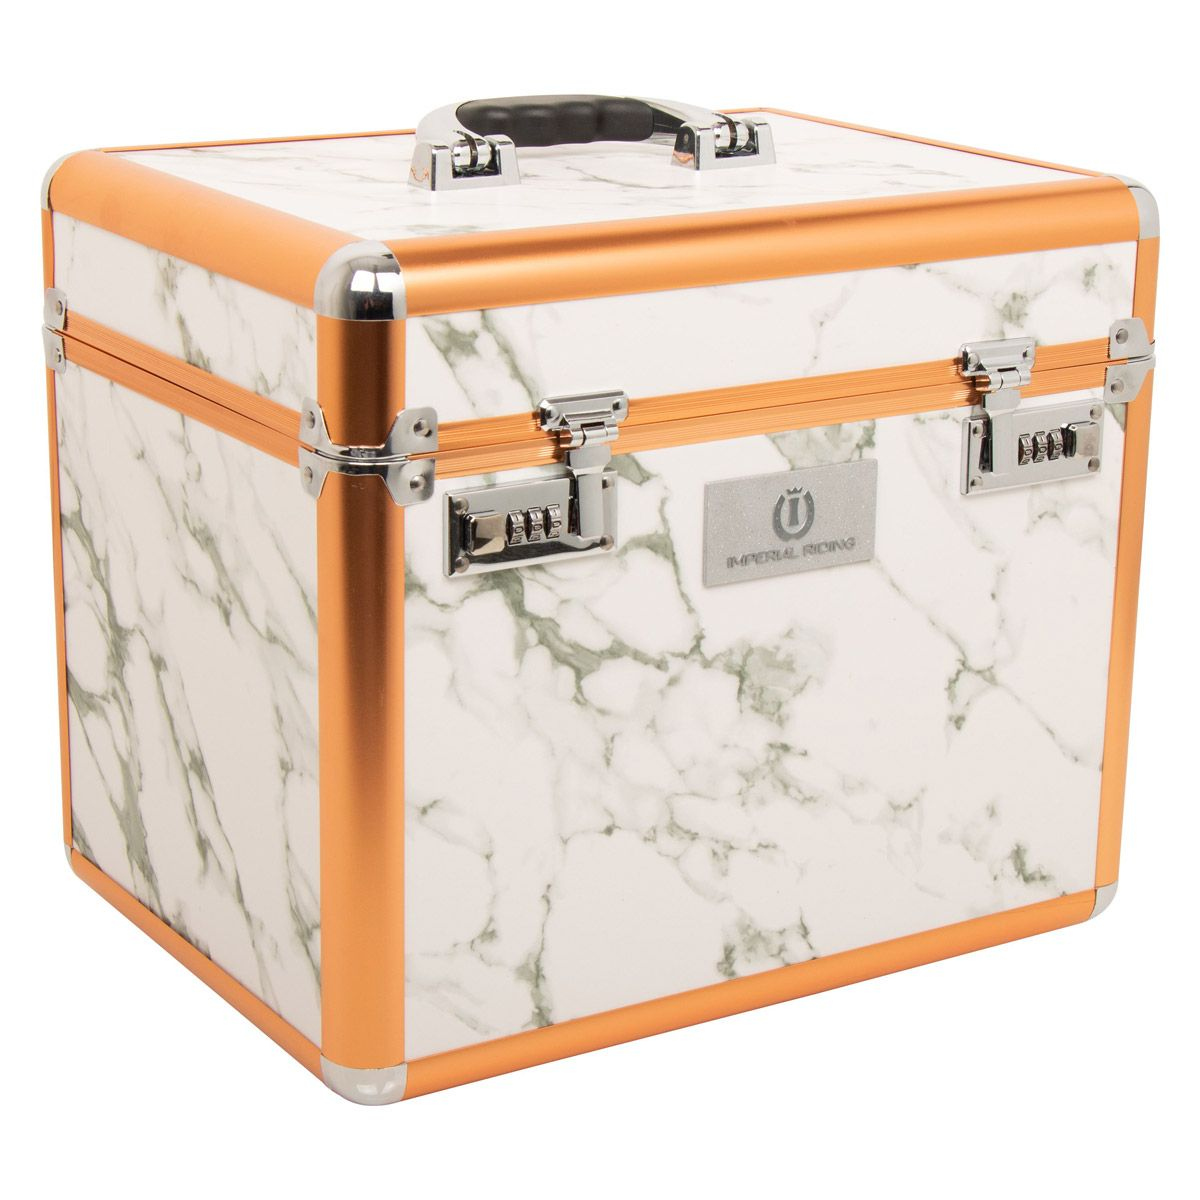 Imperial Riding Putzbox SHINY in white-marble/rosegold